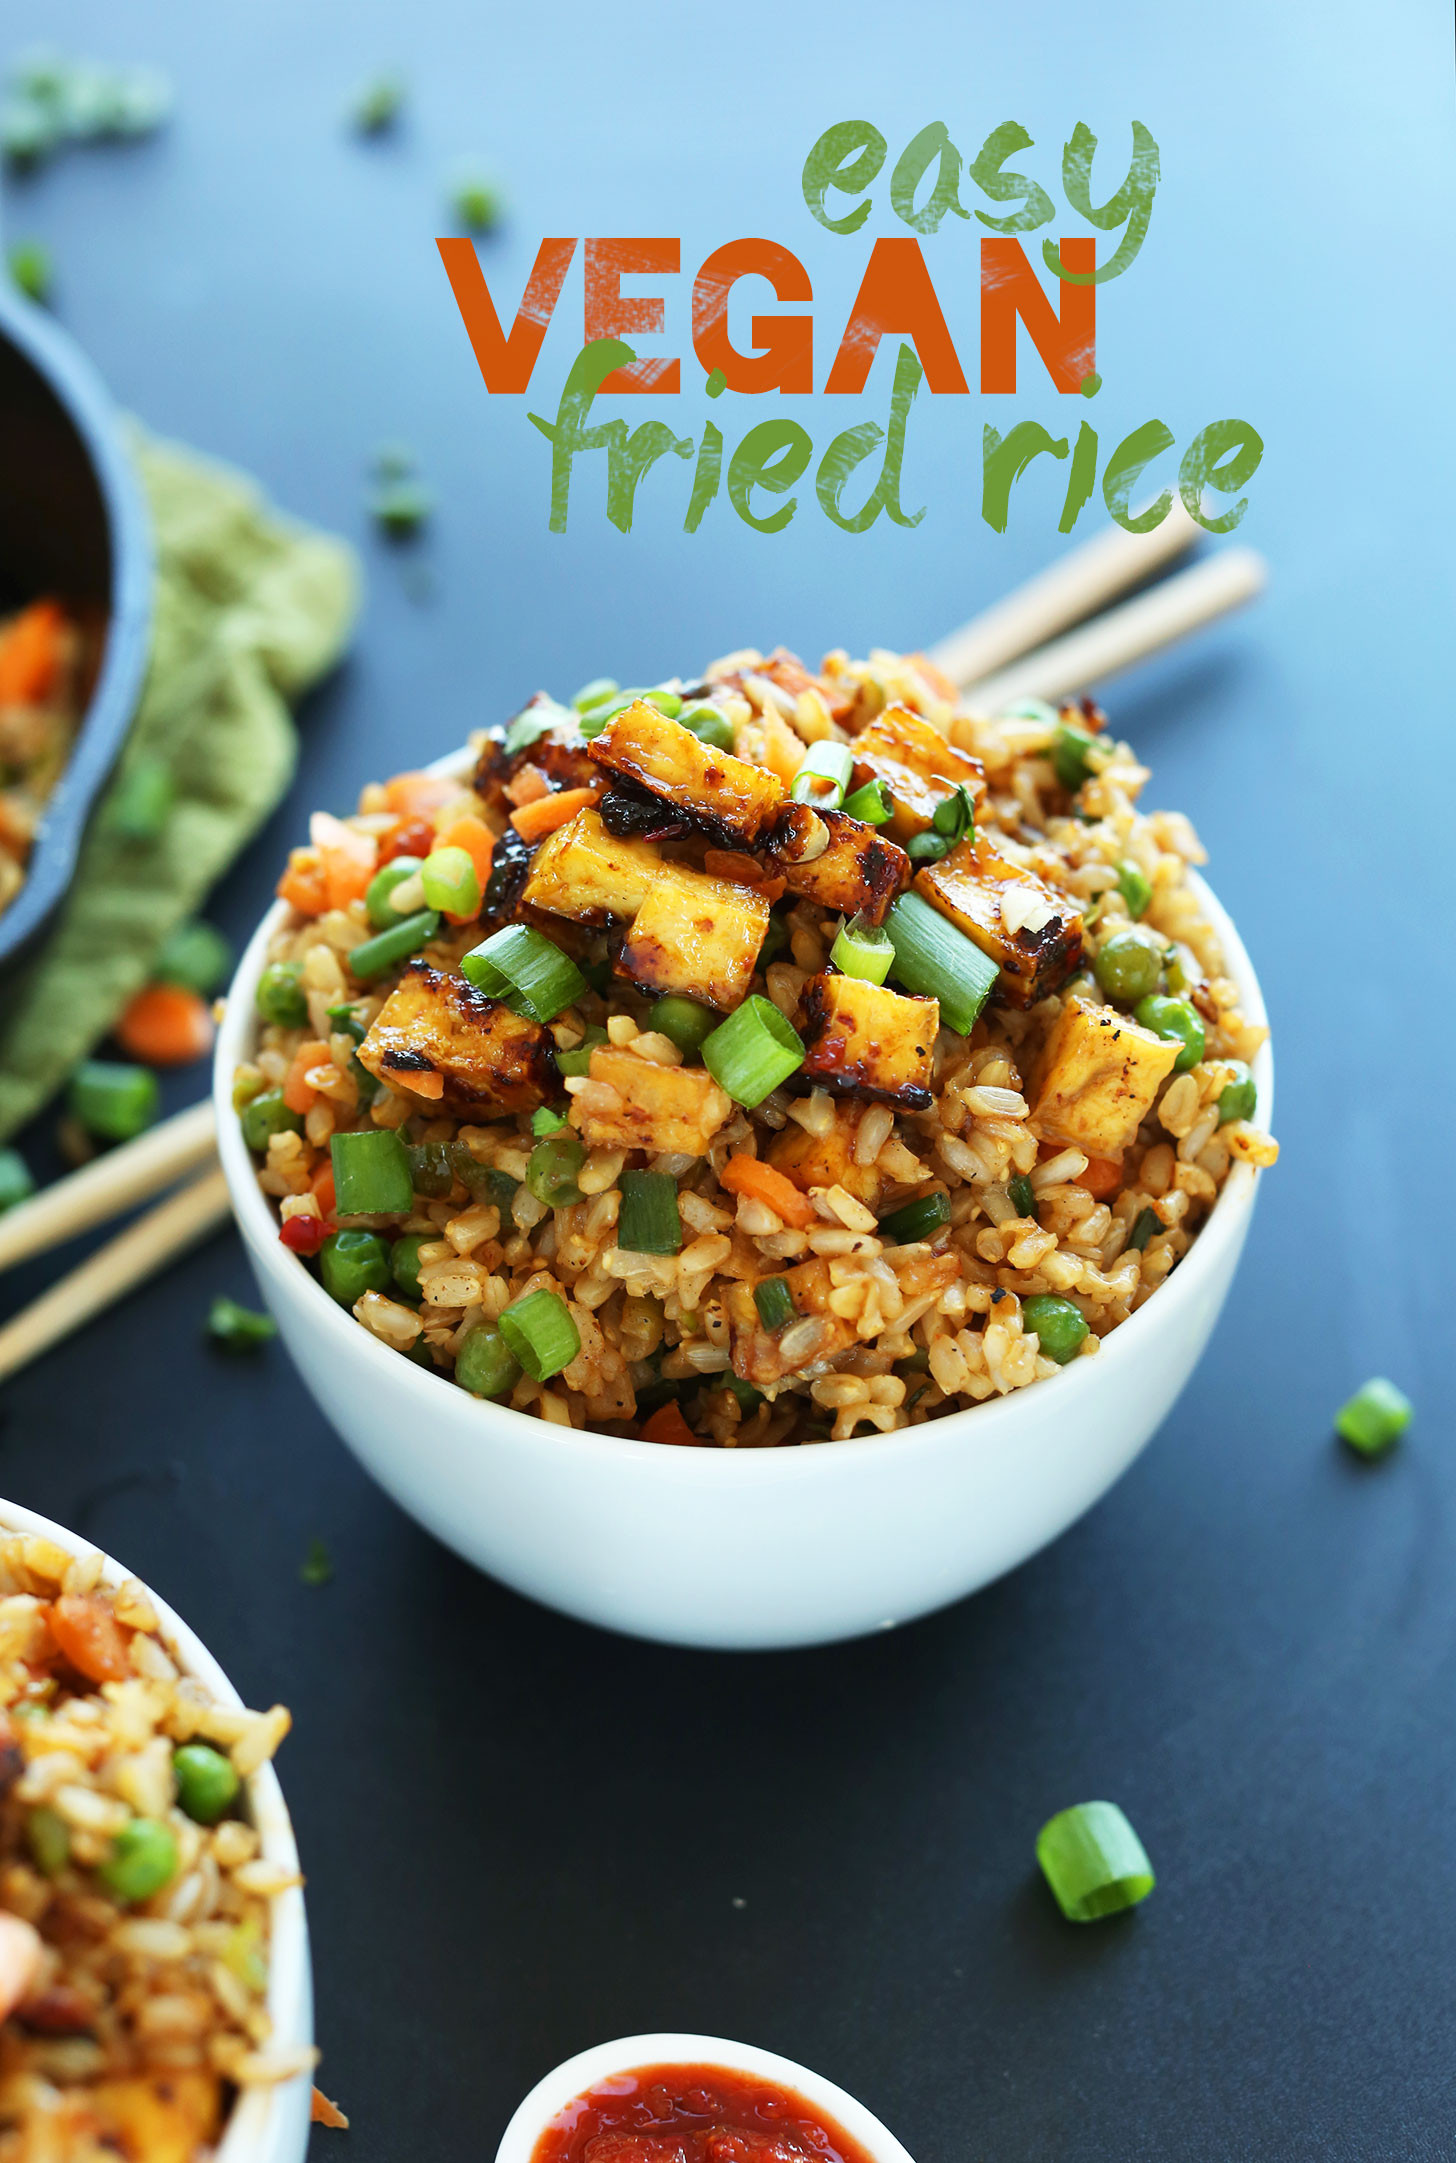 Vegan Recipes With Rice  Vegan Fried Rice